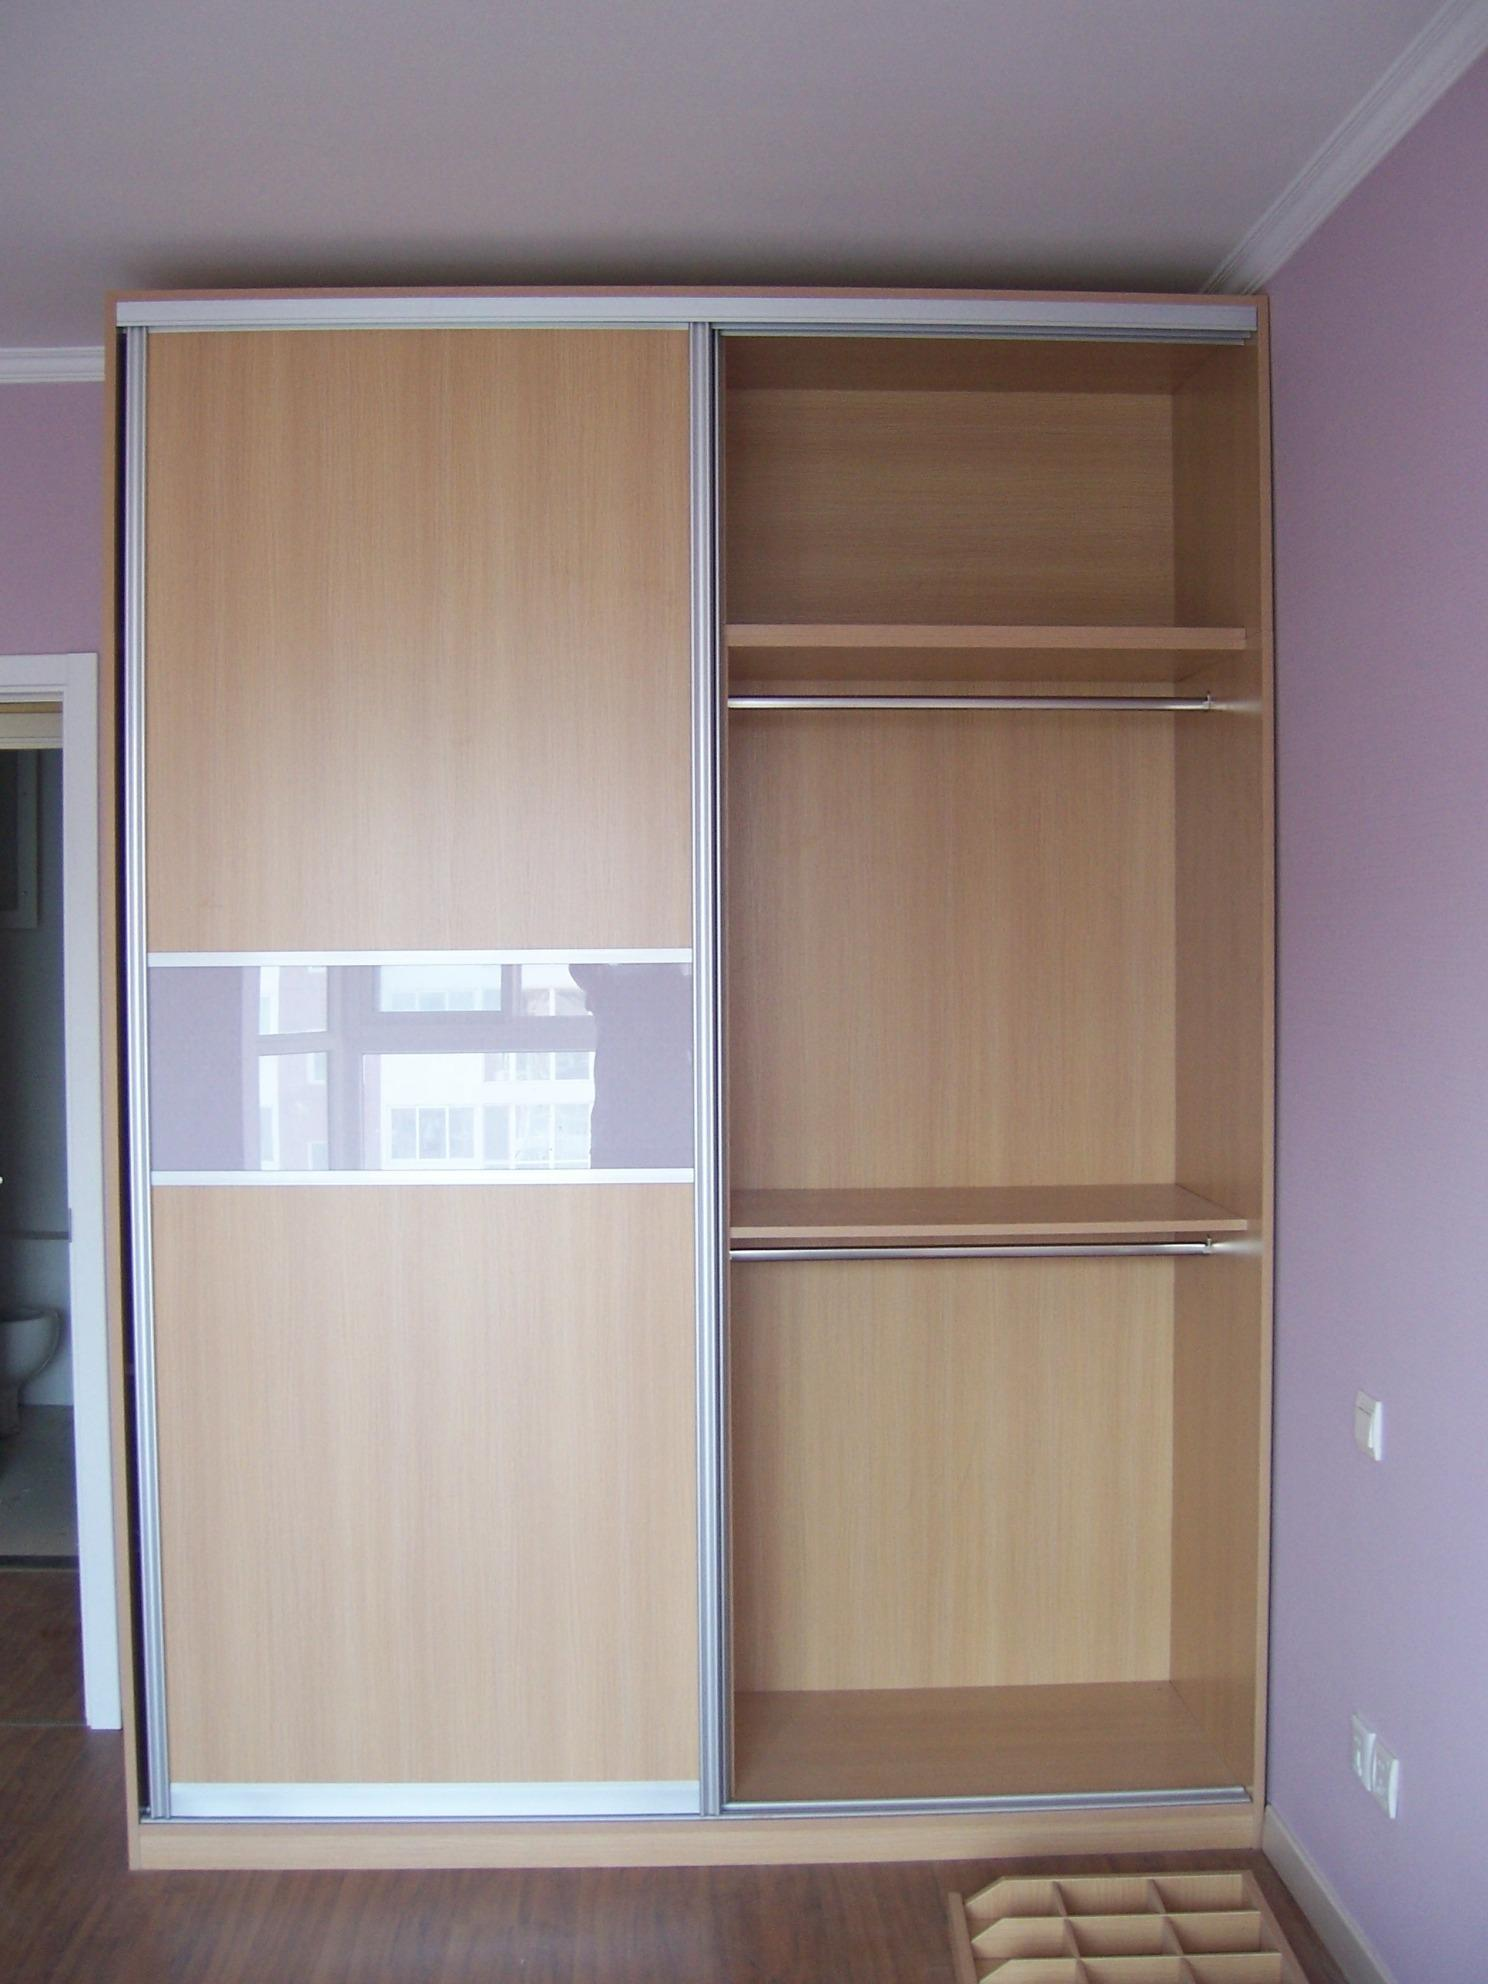 Wardrobe Closet Wardrobe Closet Bedroom Furniture